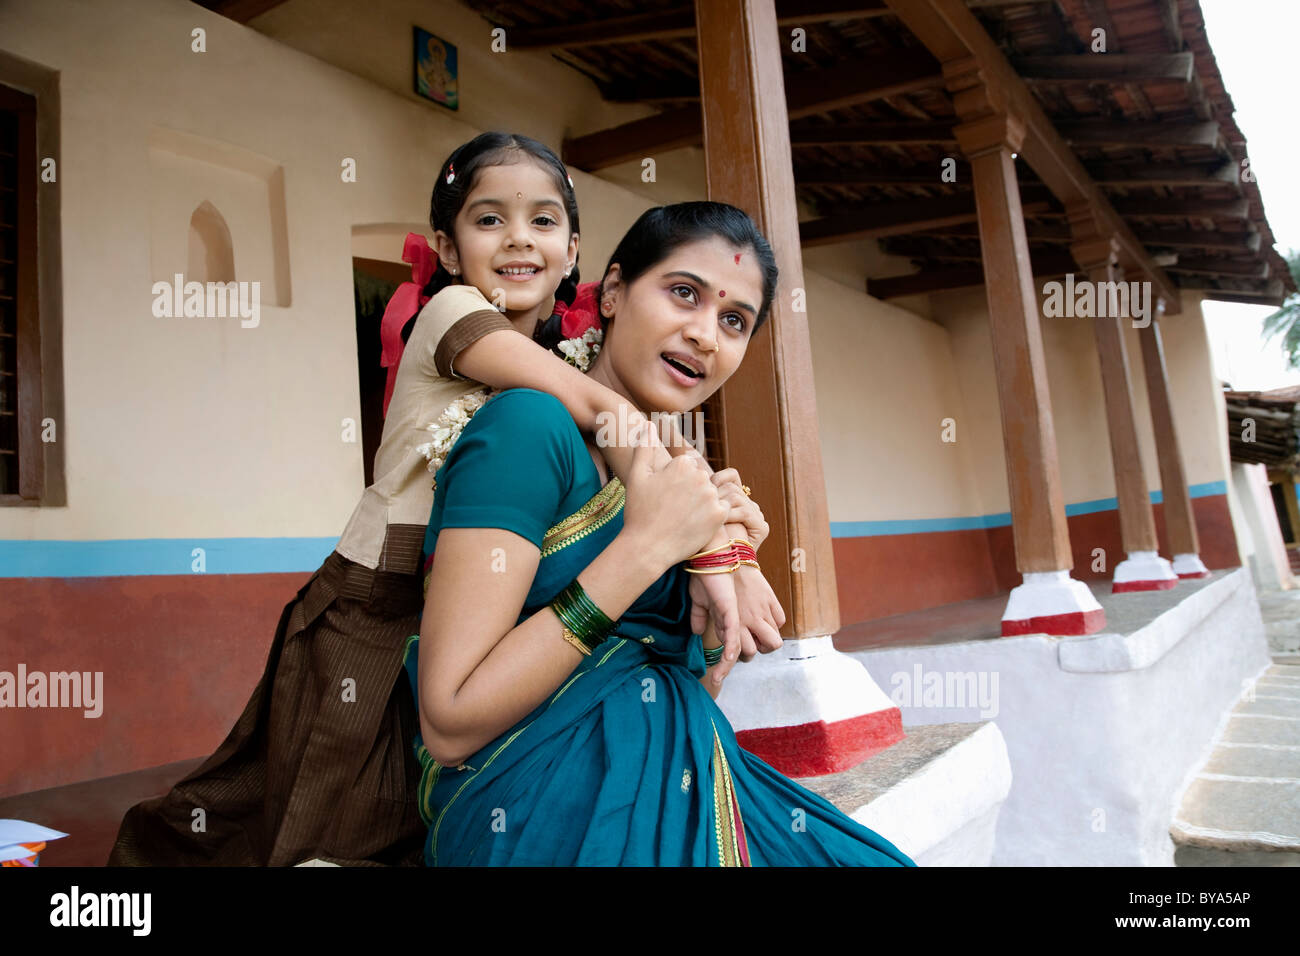 Portrait of a girl and her mother - Stock Image